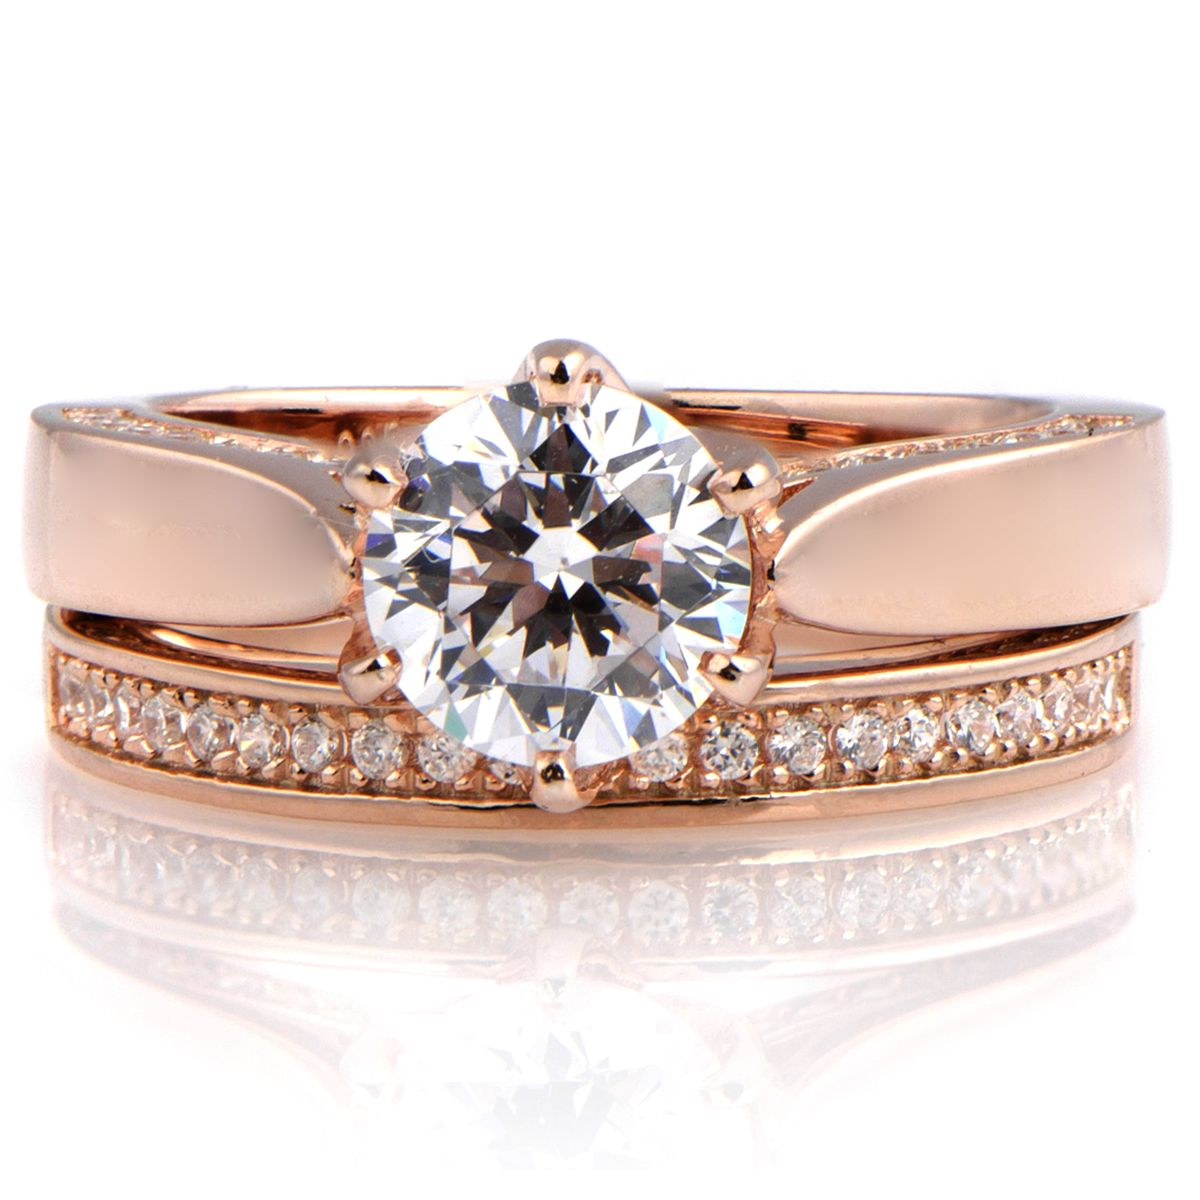 cheap rose gold wedding ring sets minimalist concept on ring - Rose Gold Wedding Ring Set